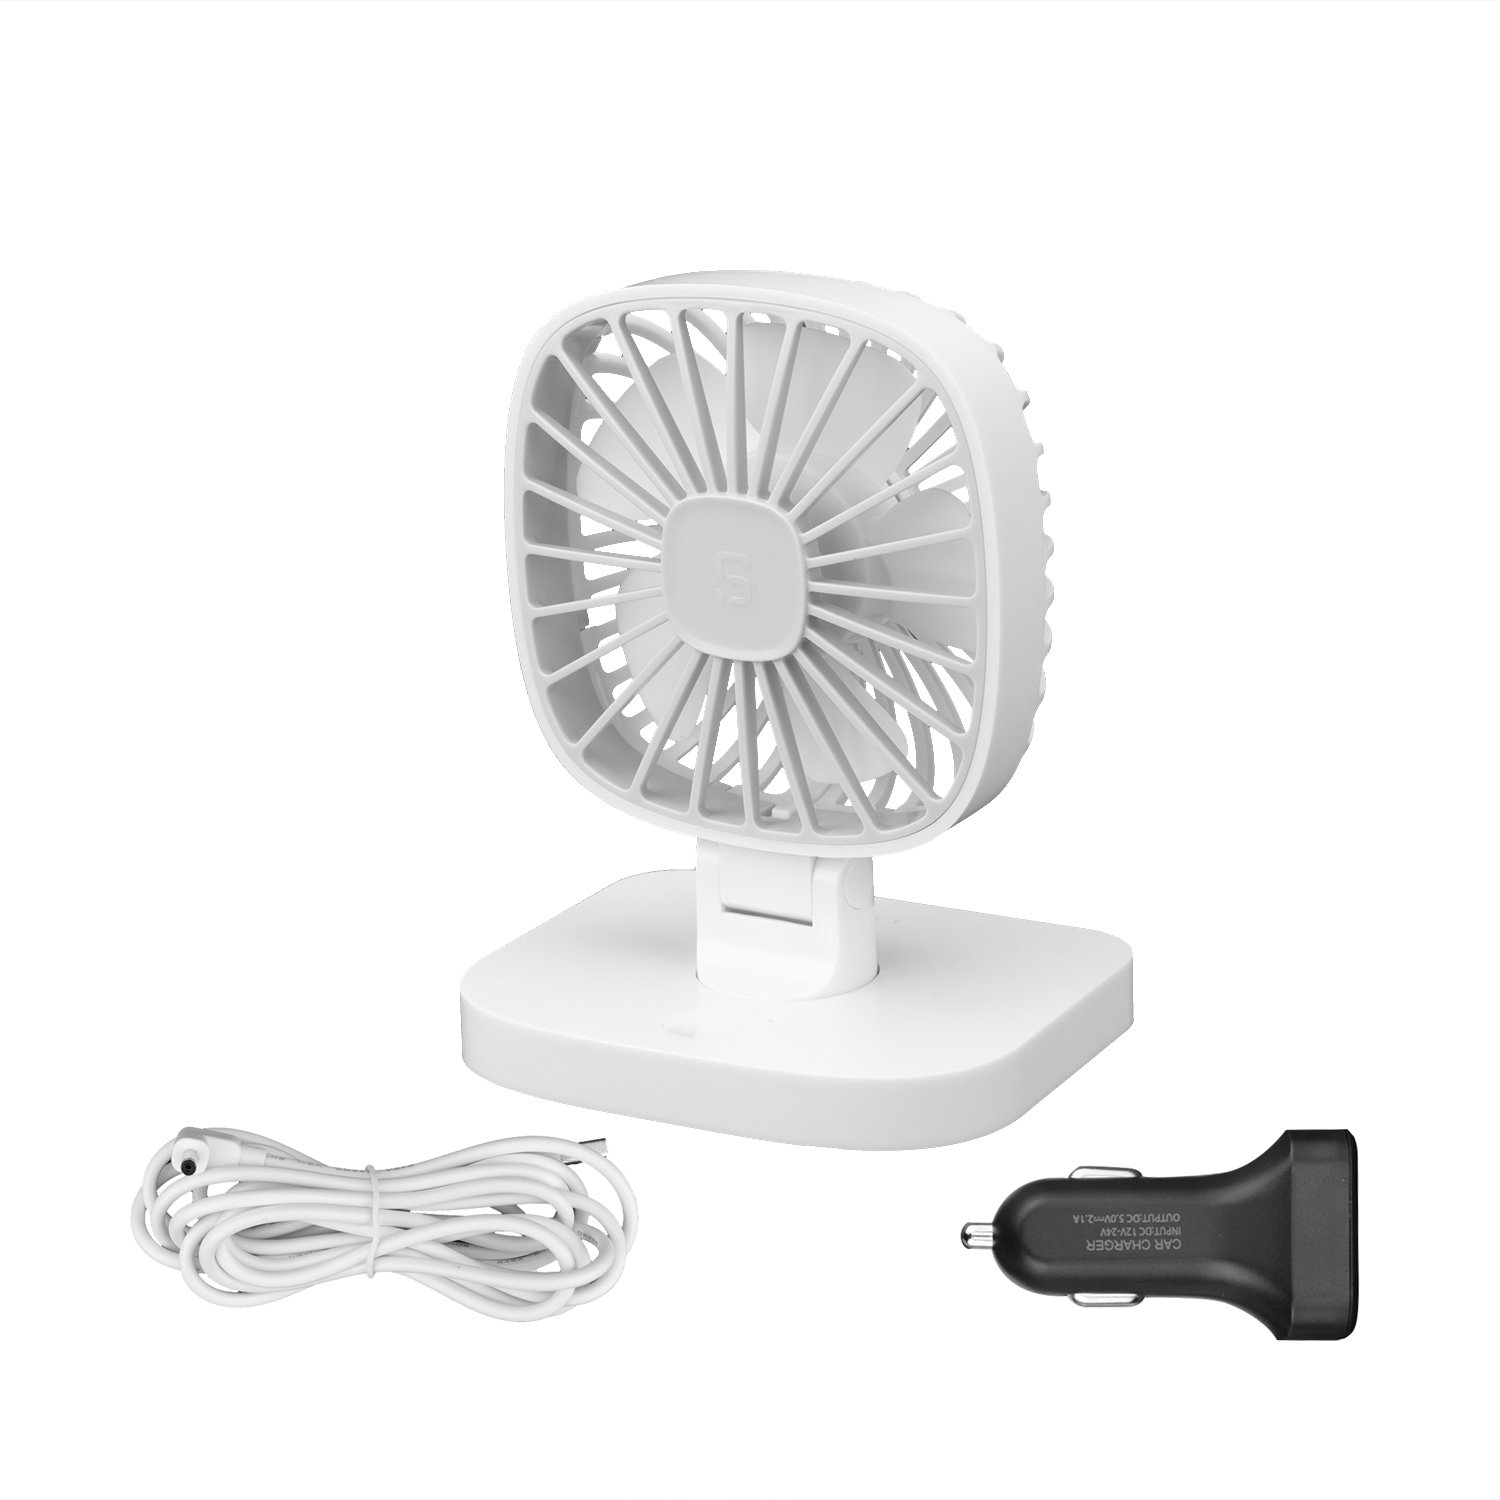 Portable 12V/24V USB Personal Table Fan Vehicle Car Cooling Fan Adjustable Angle with 3 Speeds, Cigarette Lighter Plug & DC Connector for Two Fans Using At The Same Time By Rely2016